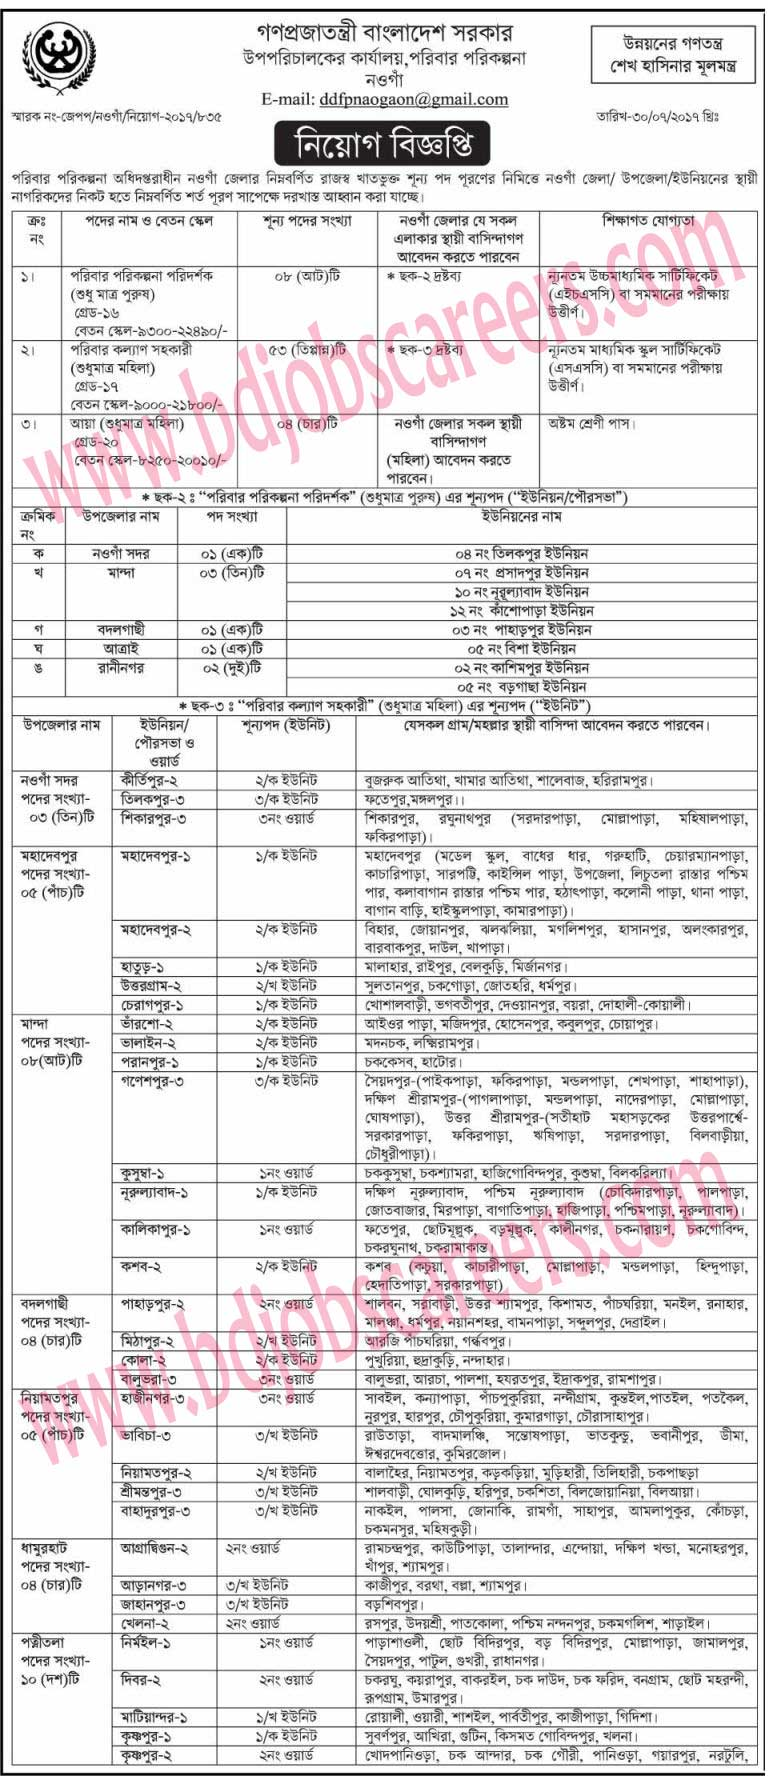 Naogaon District Family Planning Deputy Director's Office Job Circular 2017